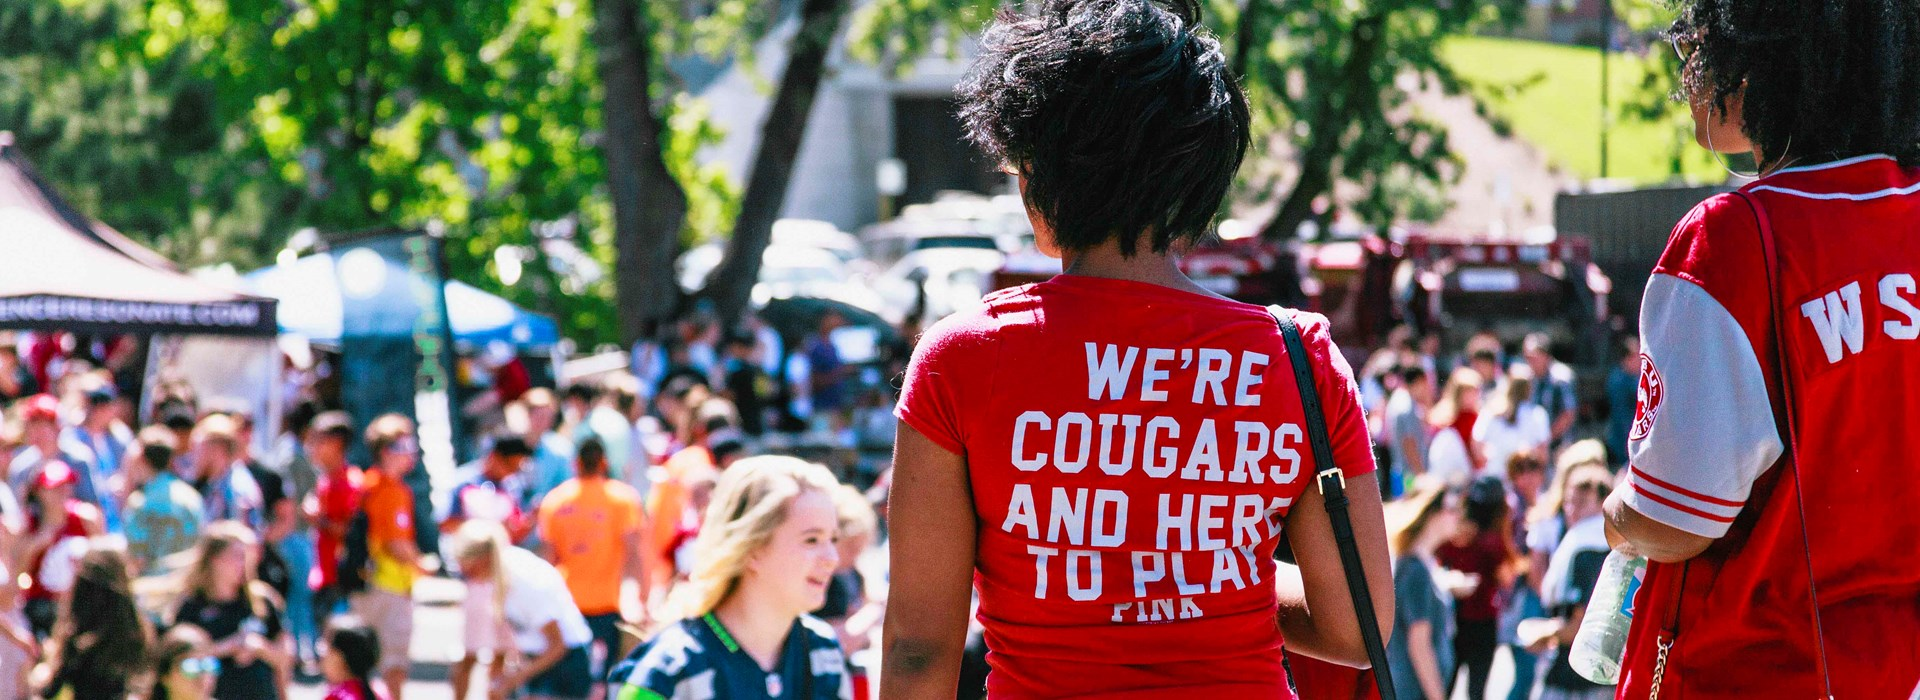 "Student wearing a shirt that says ""We're Cougars and hear to play."""